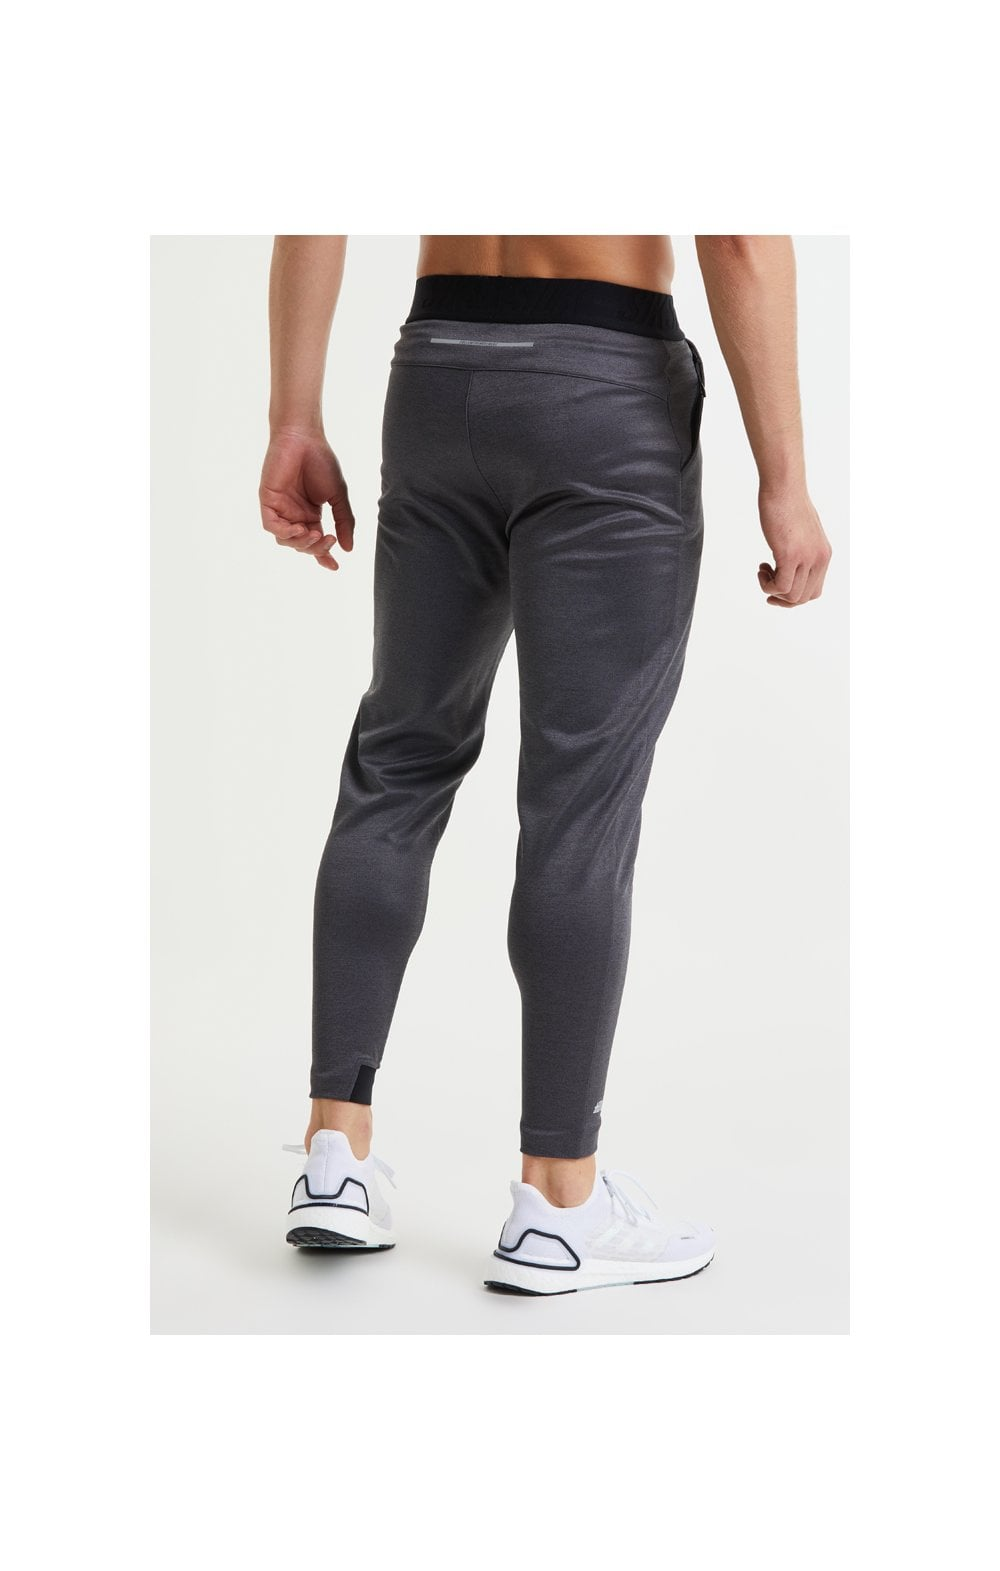 Load image into Gallery viewer, SikSilk Rapid Pants – Charcoal Marl (5)